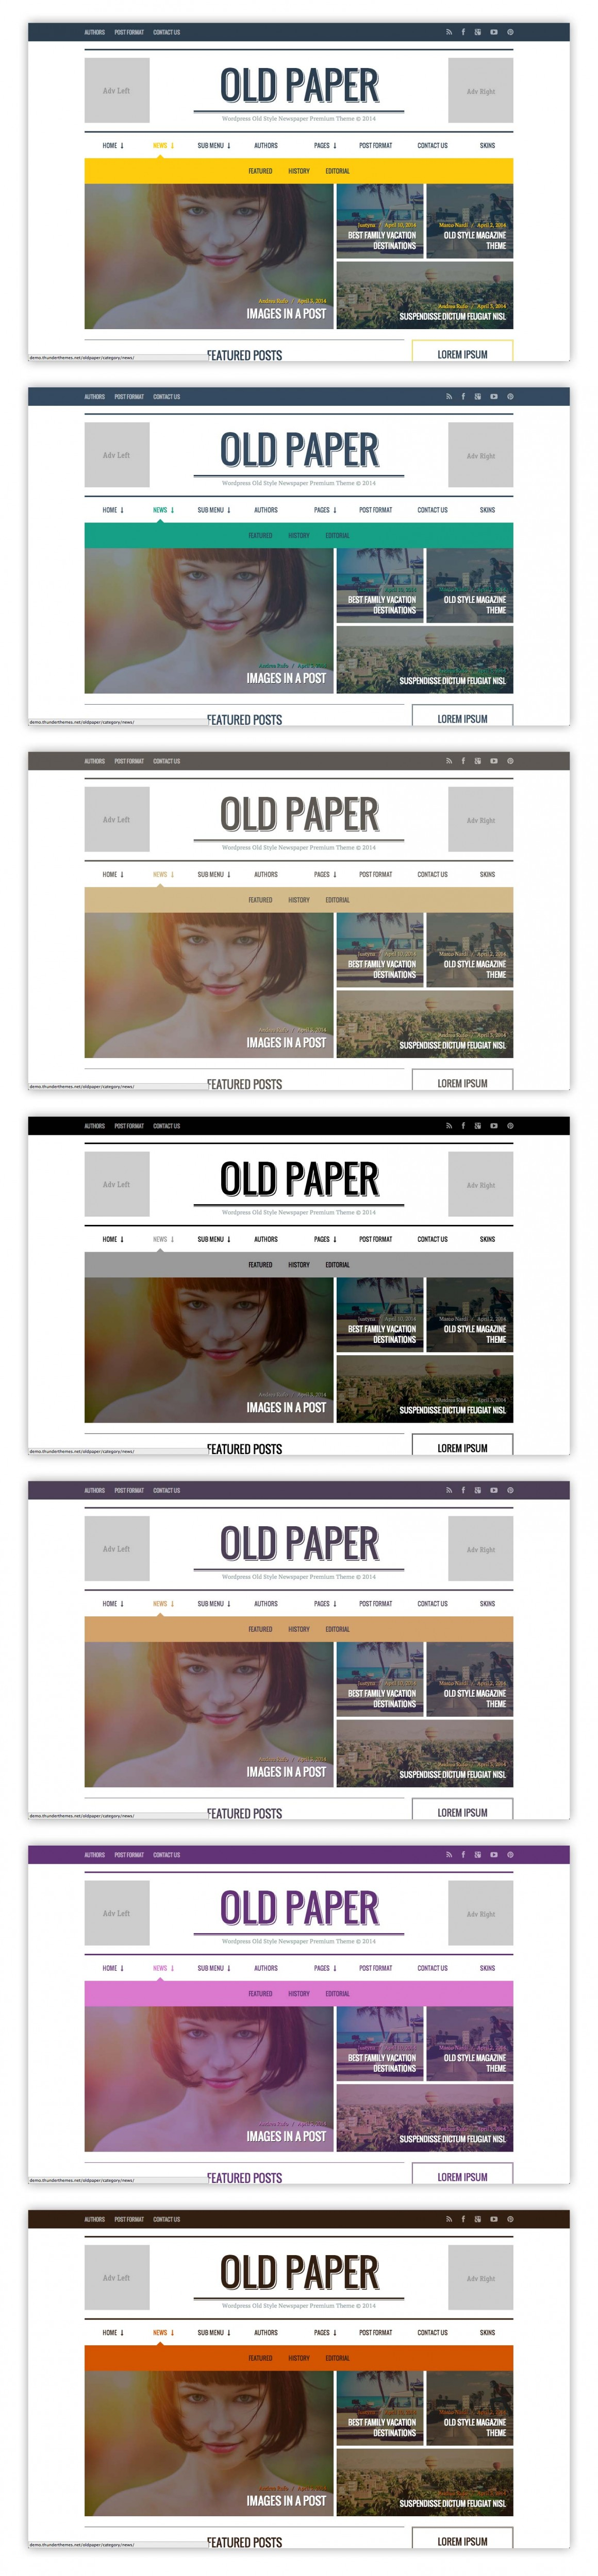 Old Paper selected Skins